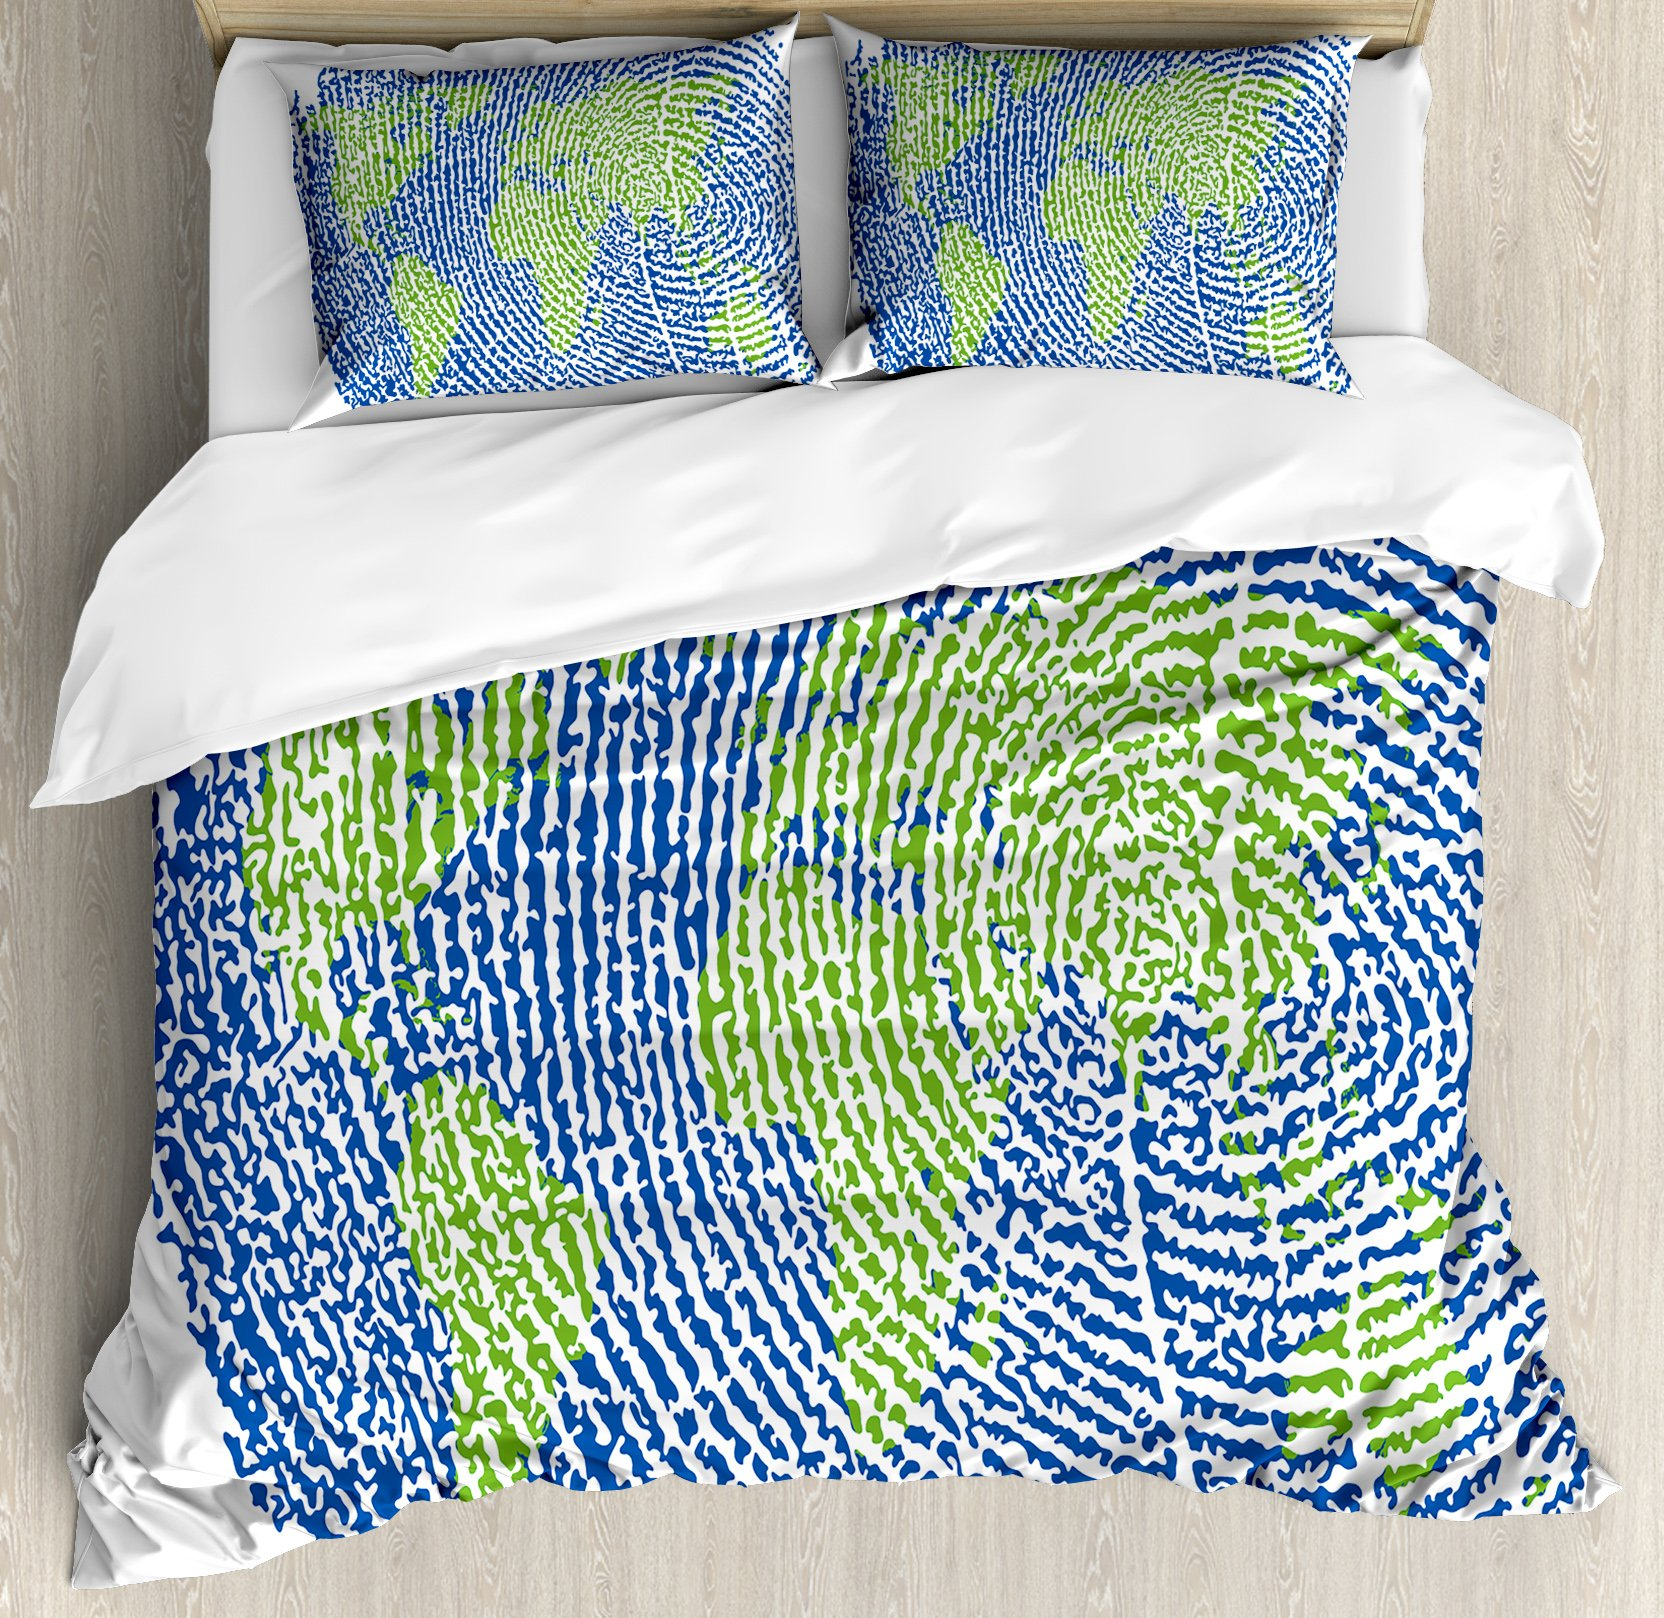 World Map Duvet Cover Set Queen Size by Ambesonne, Map of the World Fingerprint Style Continents Asia Europe Africa America, Decorative 3 Piece Bedding Set with 2 Pillow Shams, Navy Blue Green